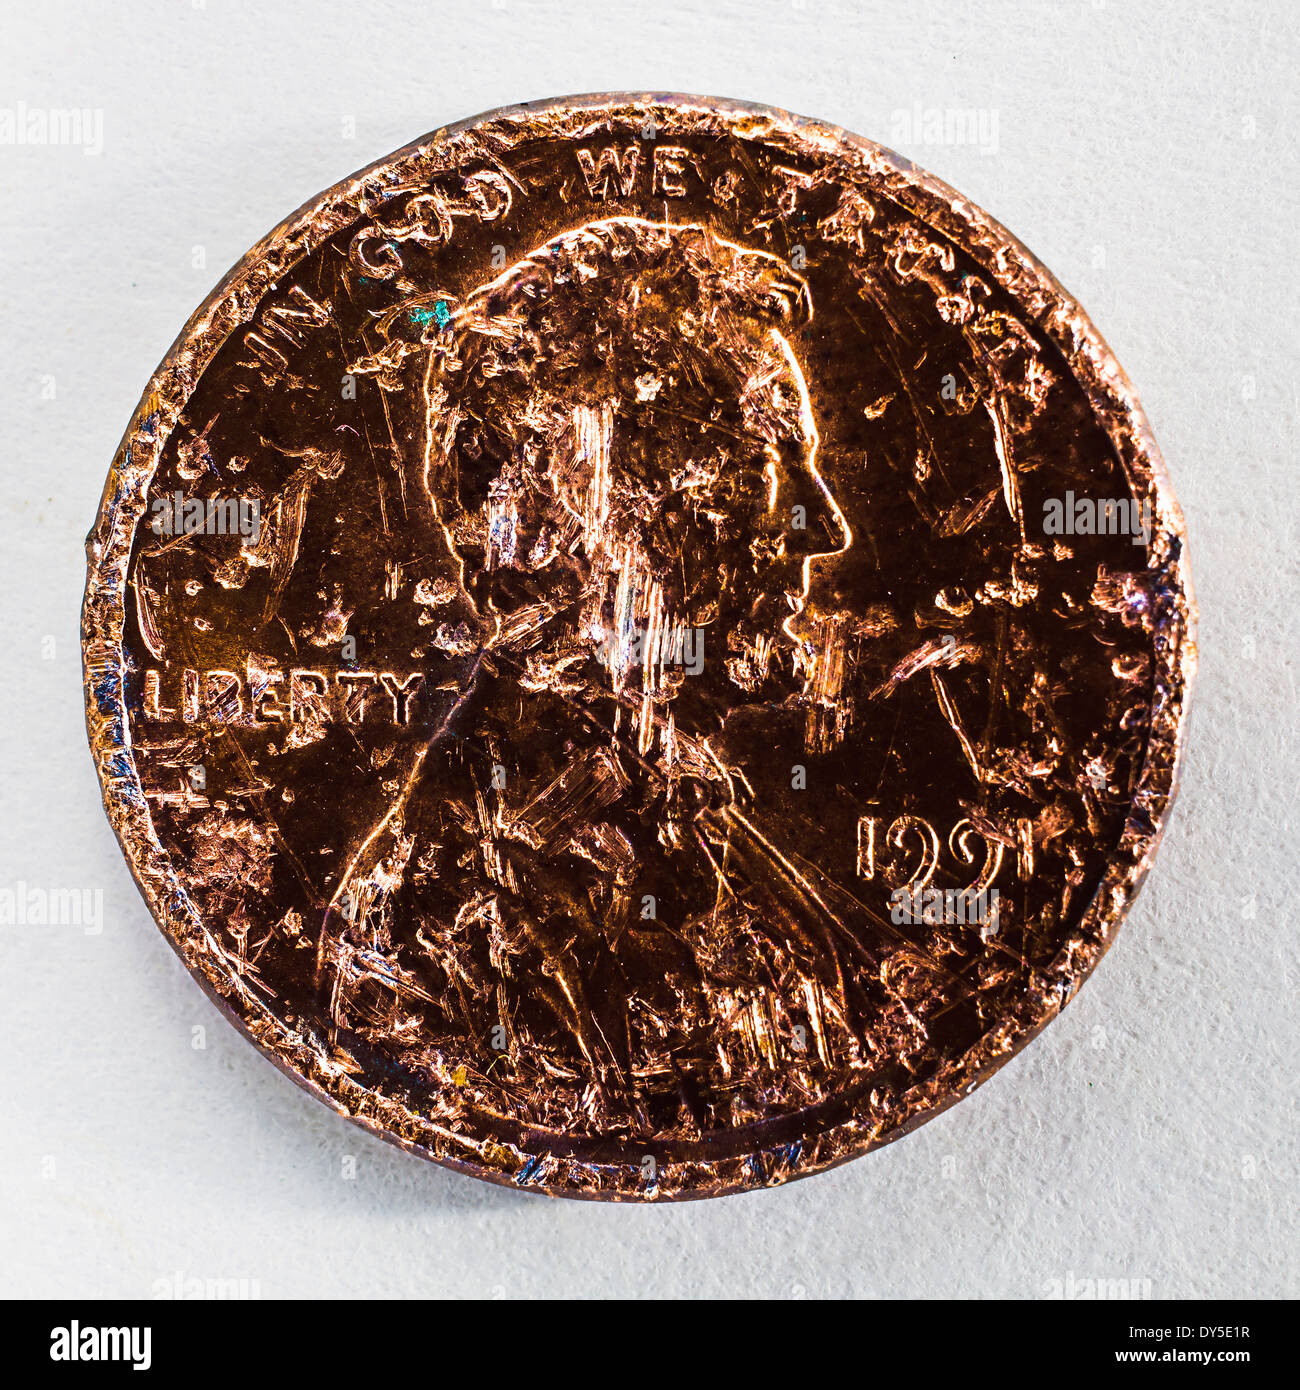 Still life of a scratched one cent coin - Stock Image